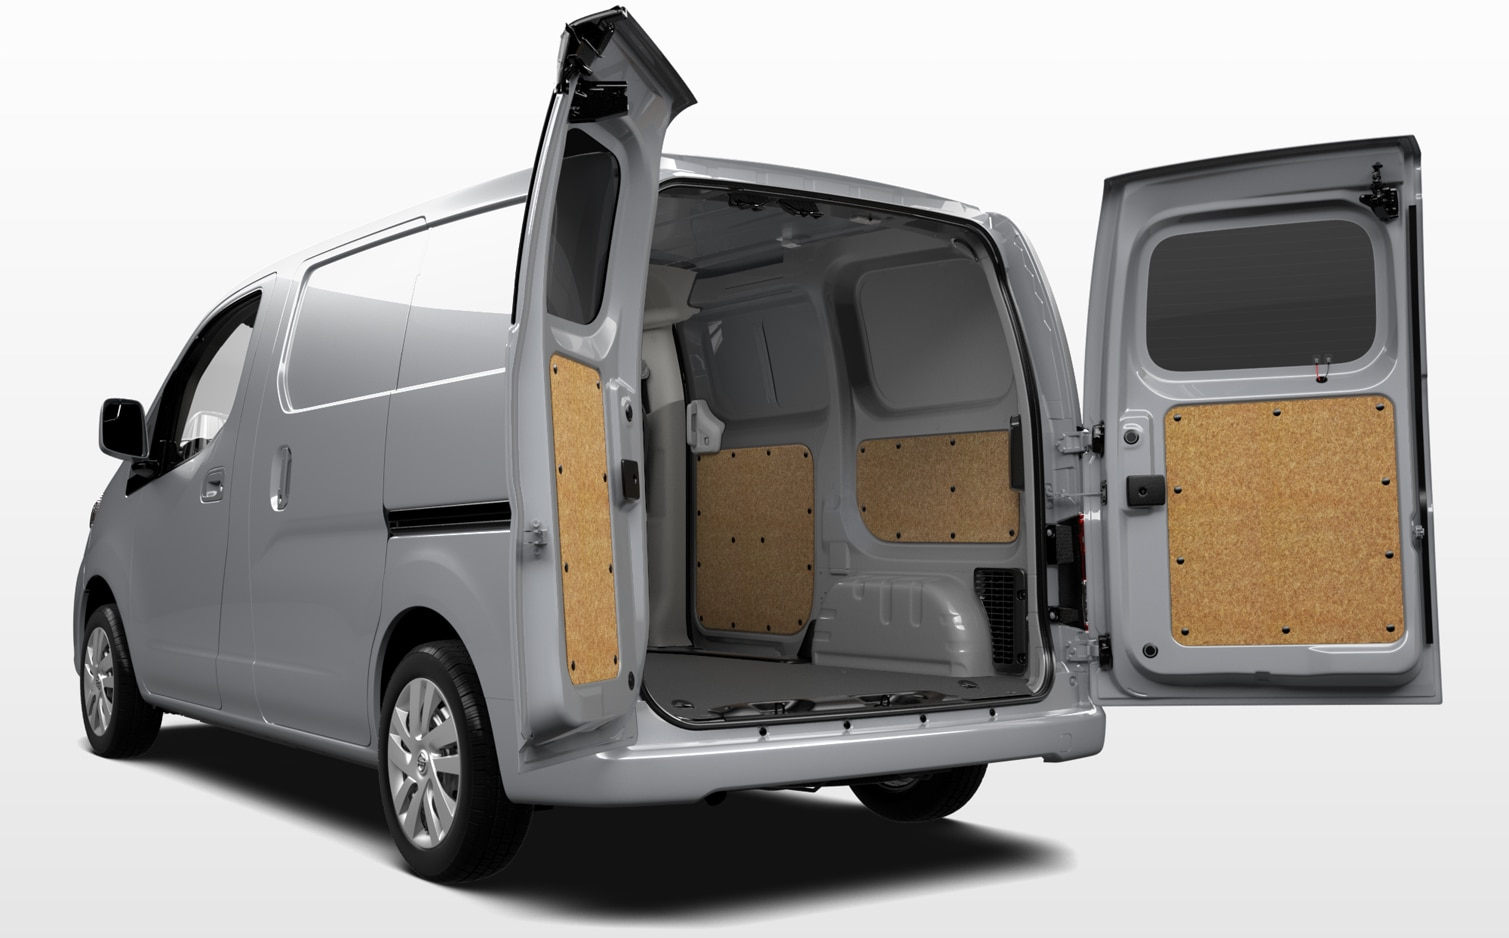 2012 Nissan Nv200 First Look Automobile Magazine